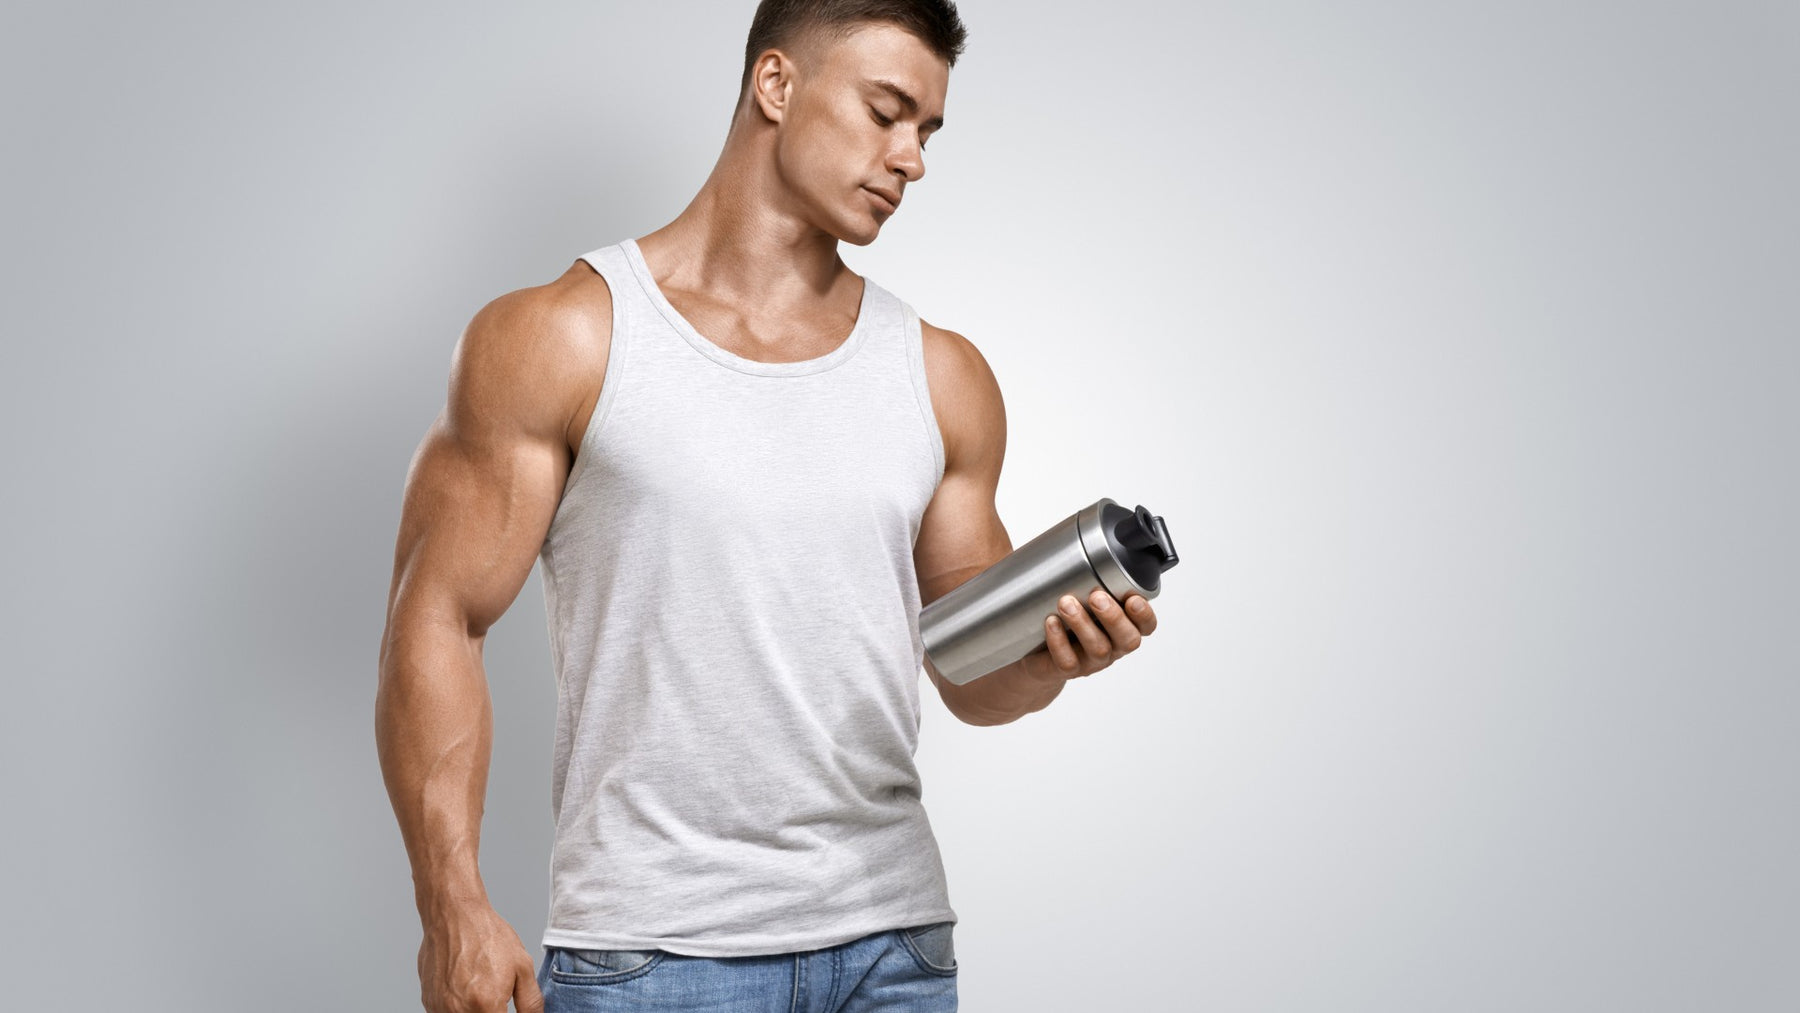 When to Eat Your Pre-Workout Meal